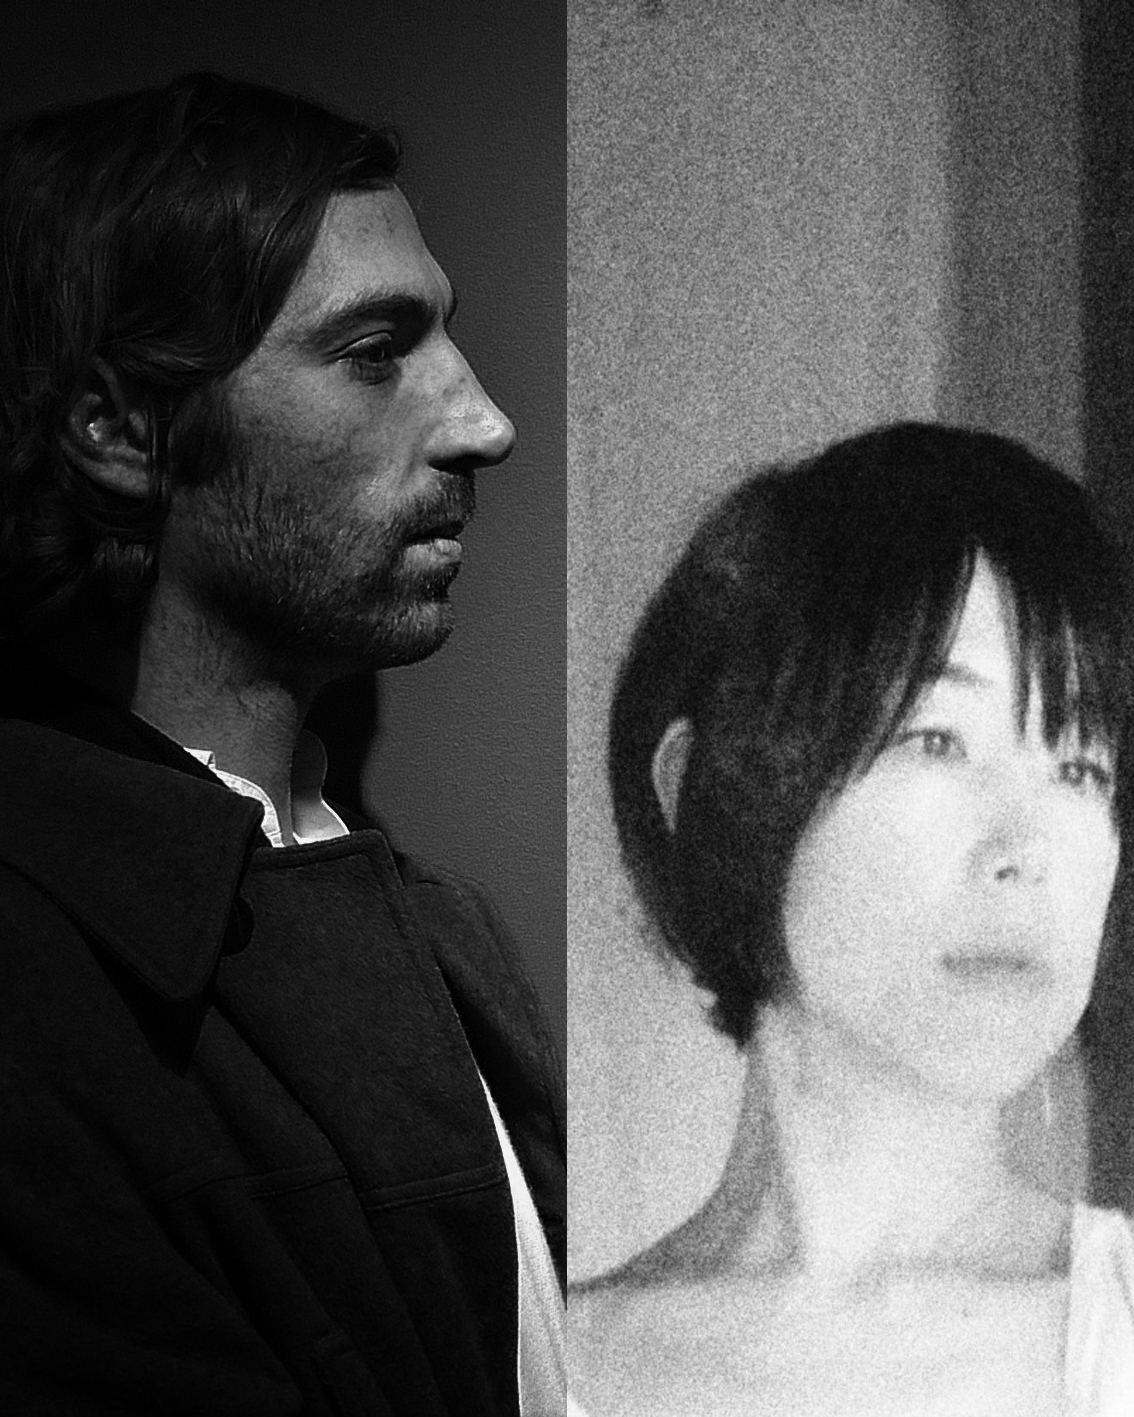 Beer O'clock Talk - with Giacomo Brunelli and Miho Kajioka